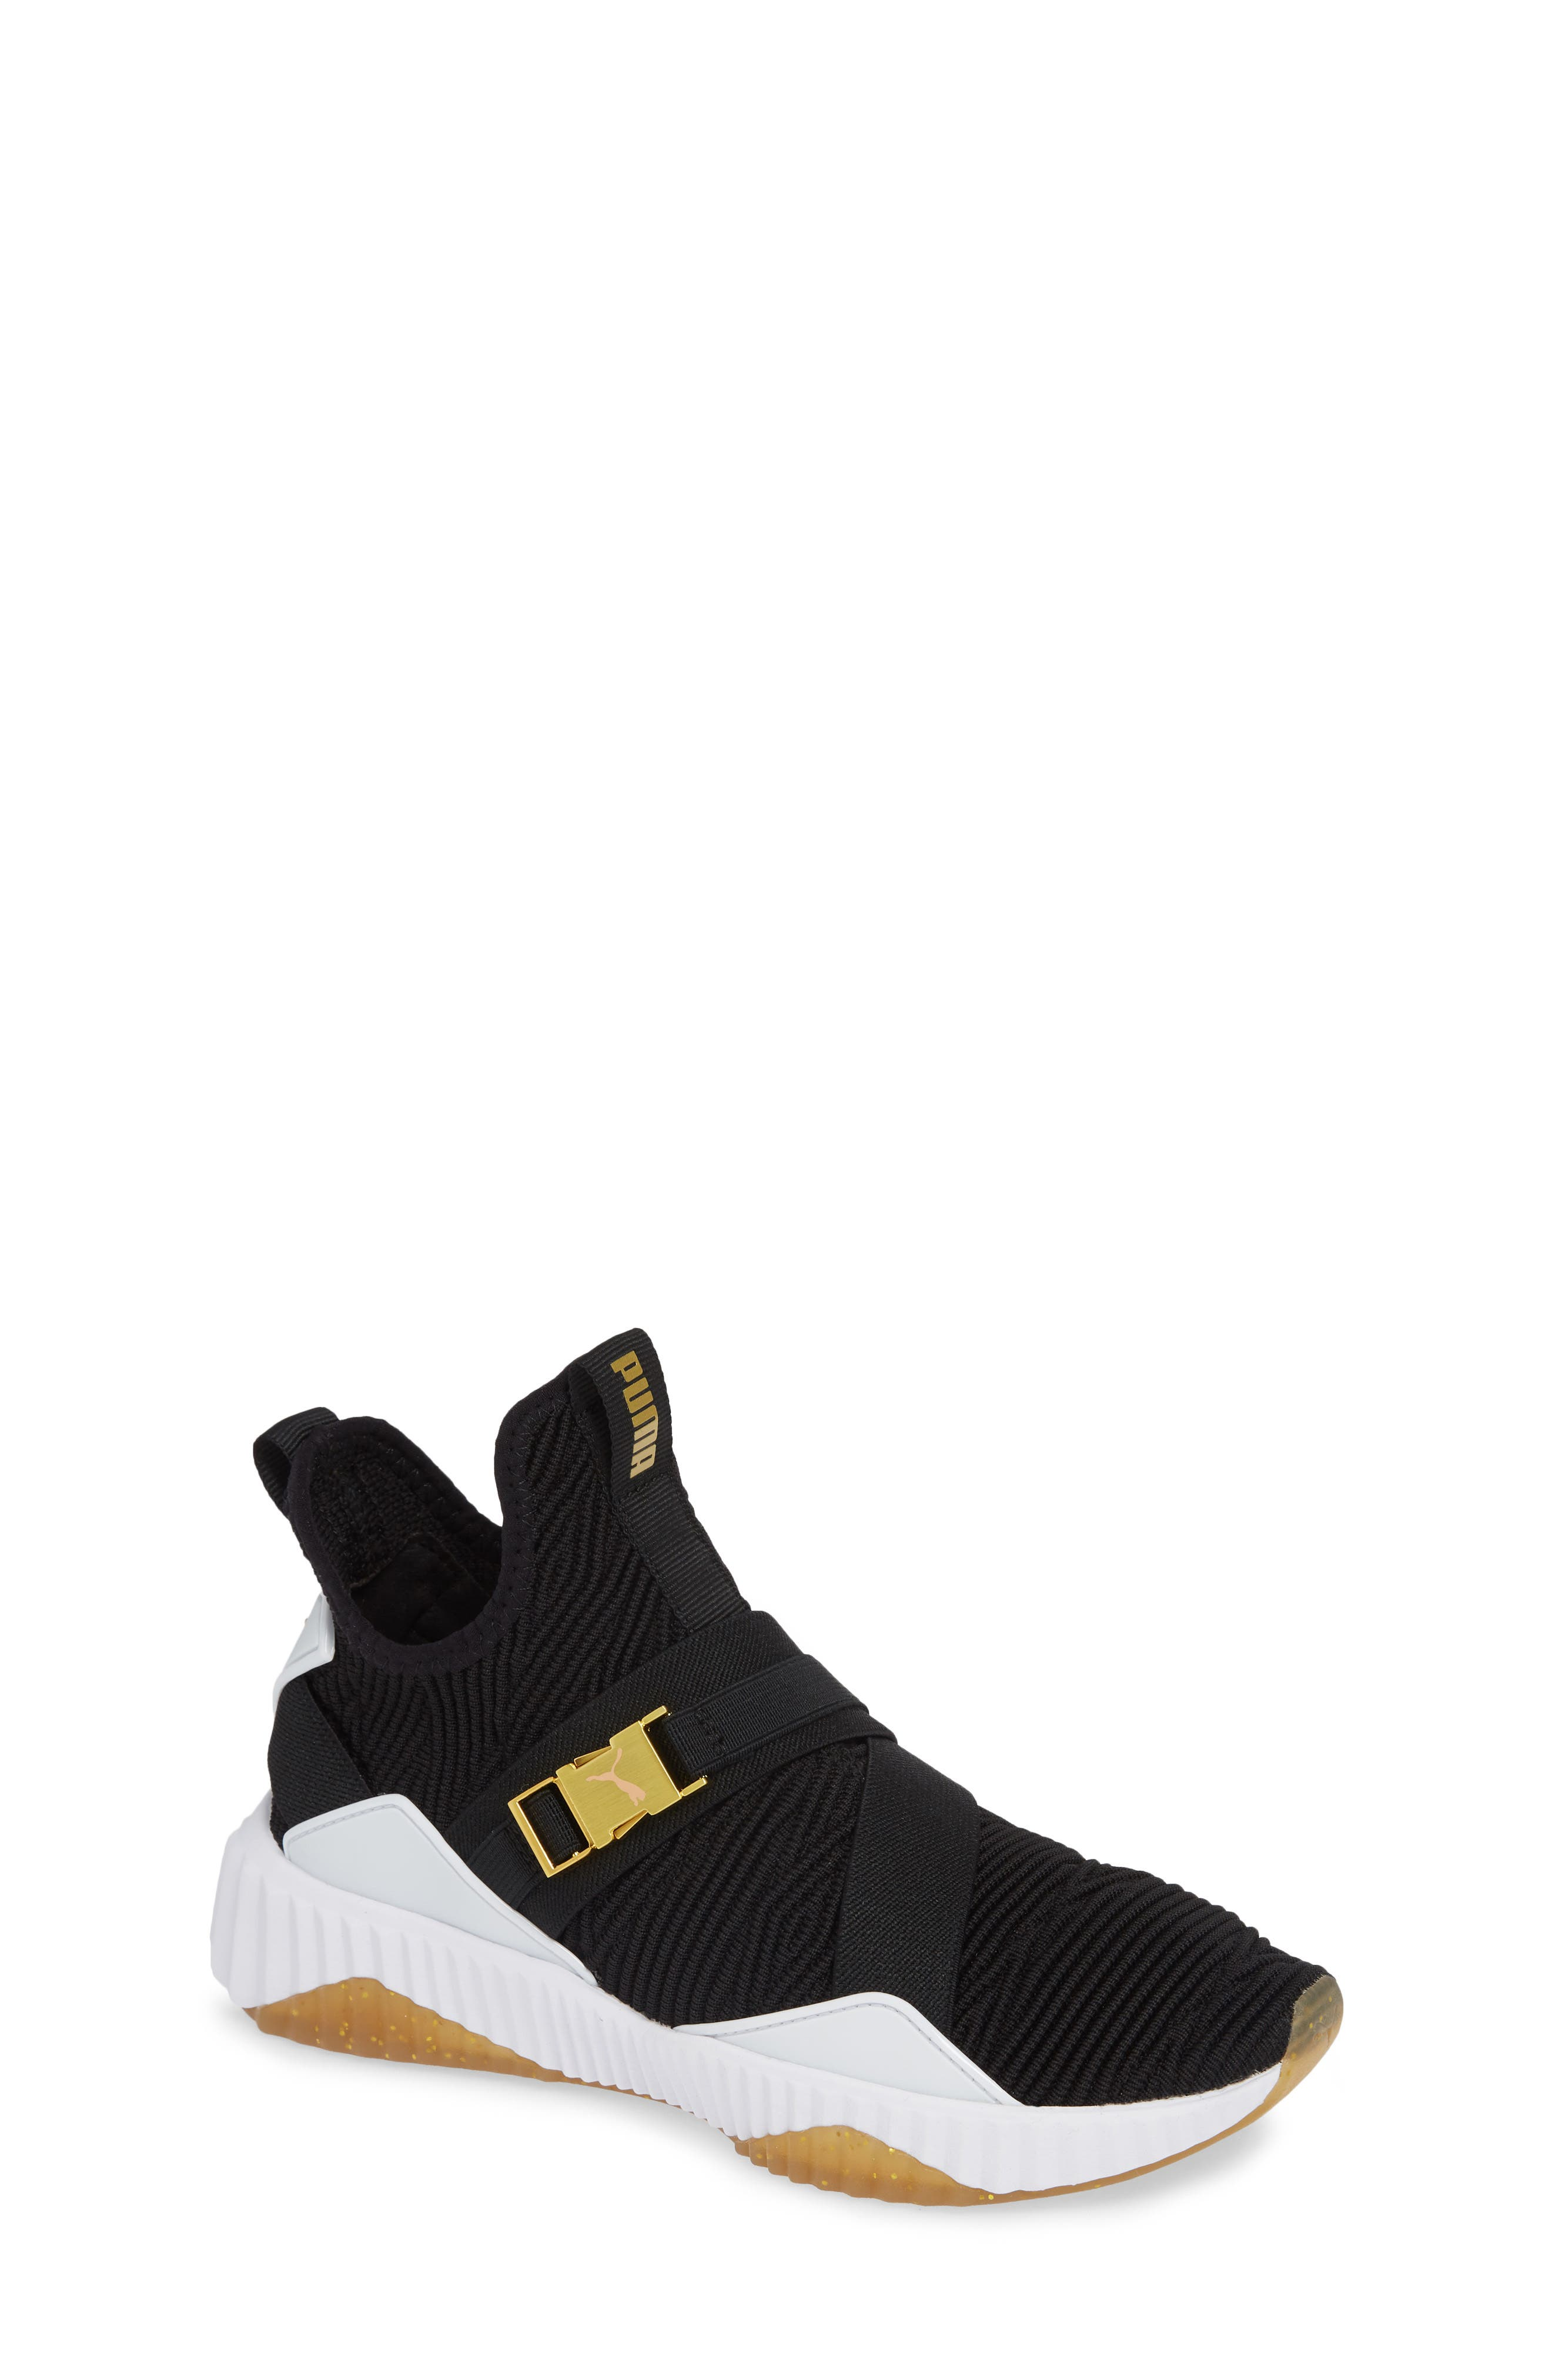 Defy Mid Varsity Sneaker,                             Main thumbnail 1, color,                             BLACK/ METALLIC GOLD